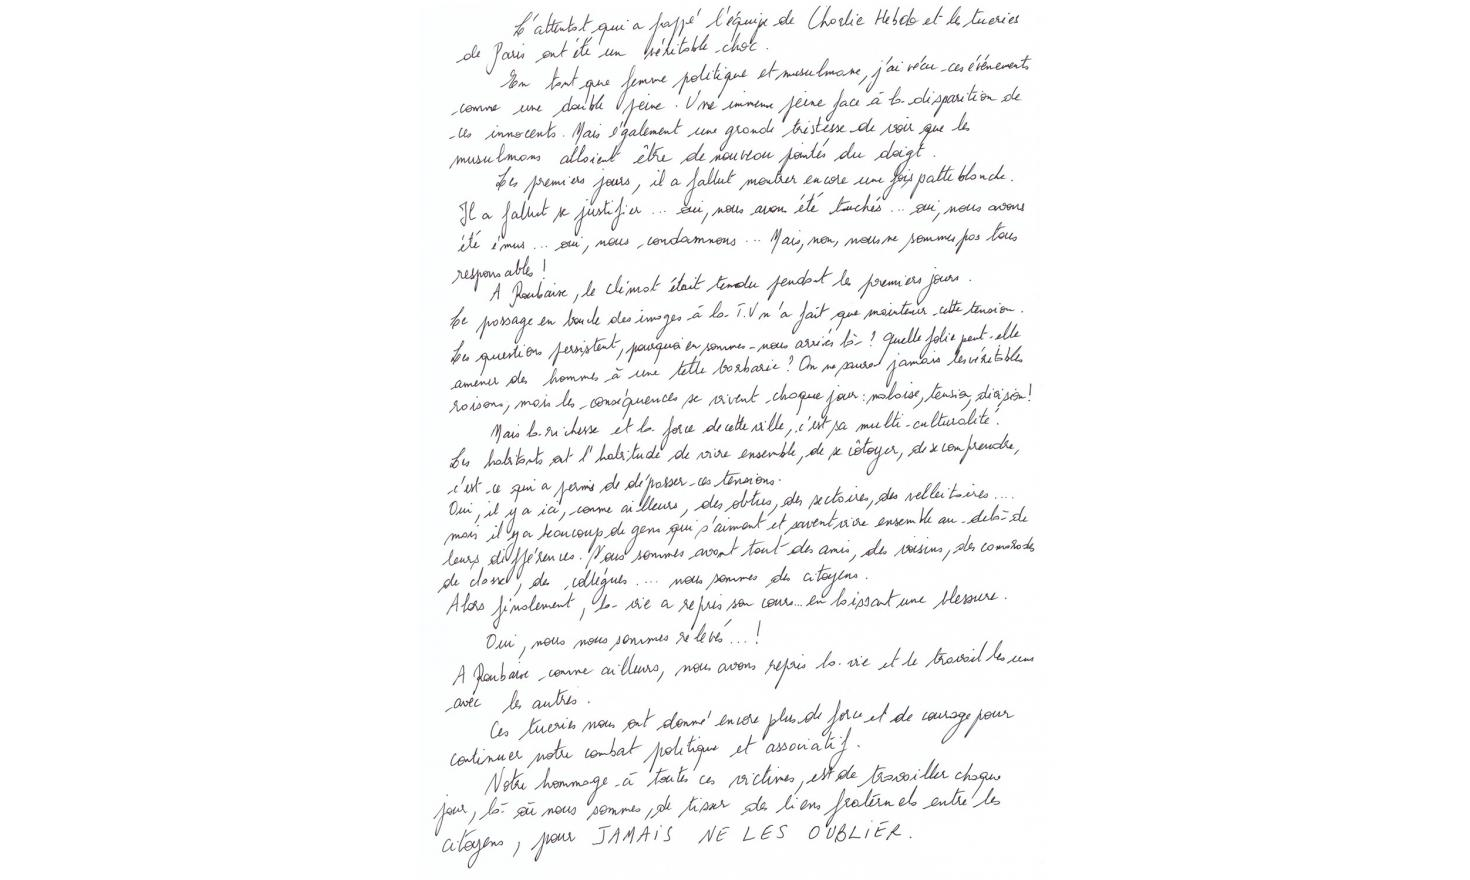 Tounes Rahim's handwritten text